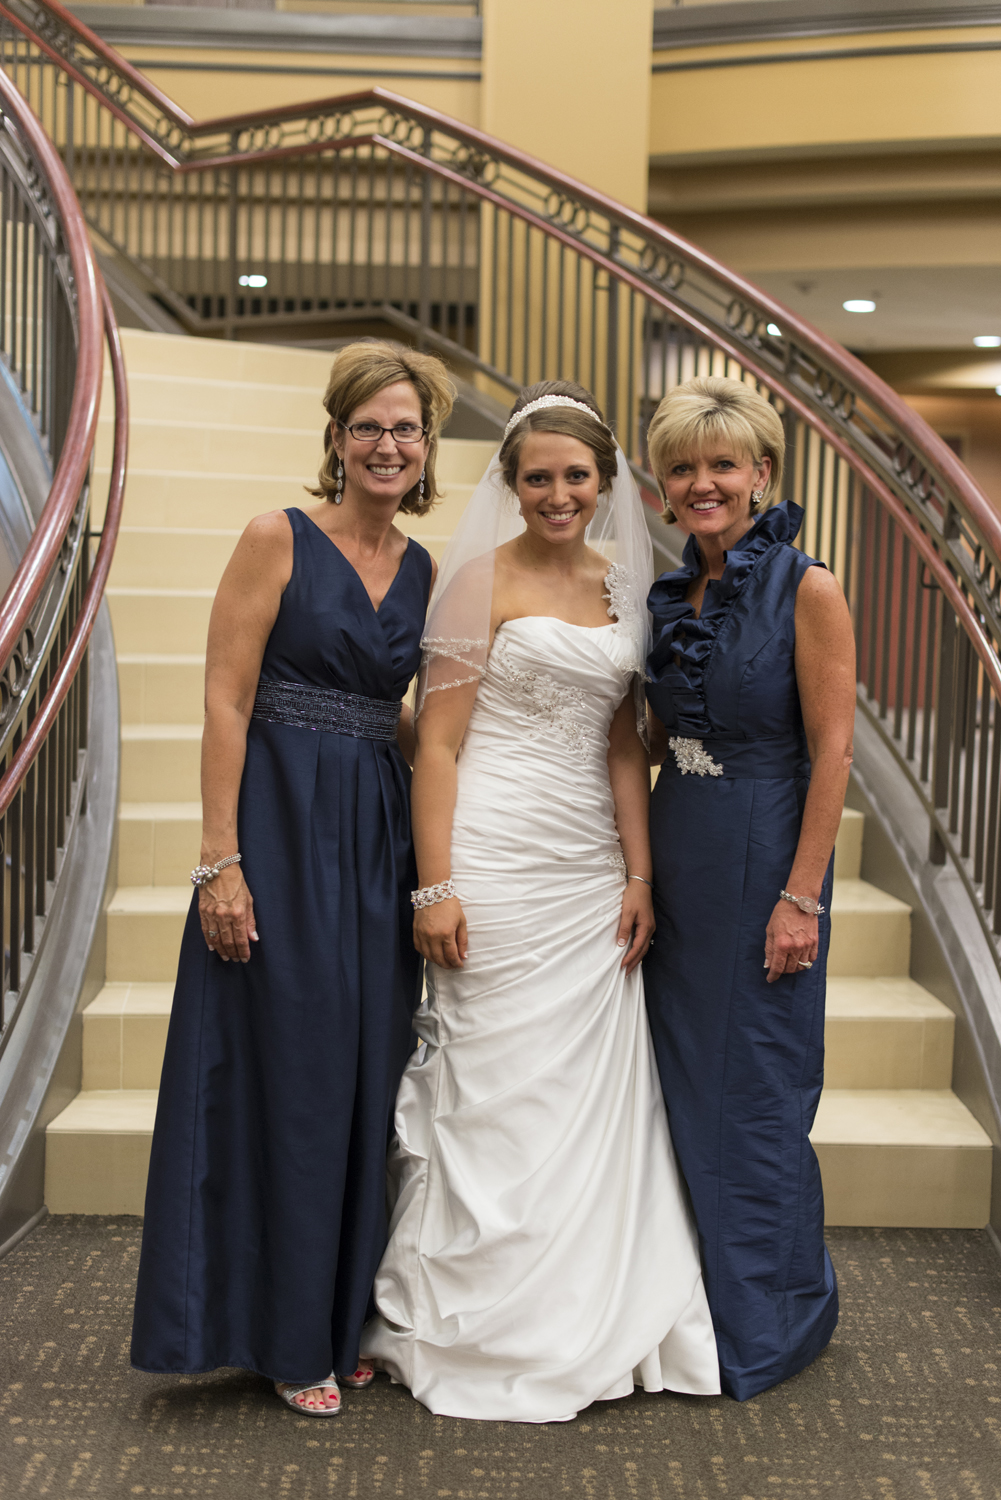 A bride with her mother and new mother-in-law before a wedding